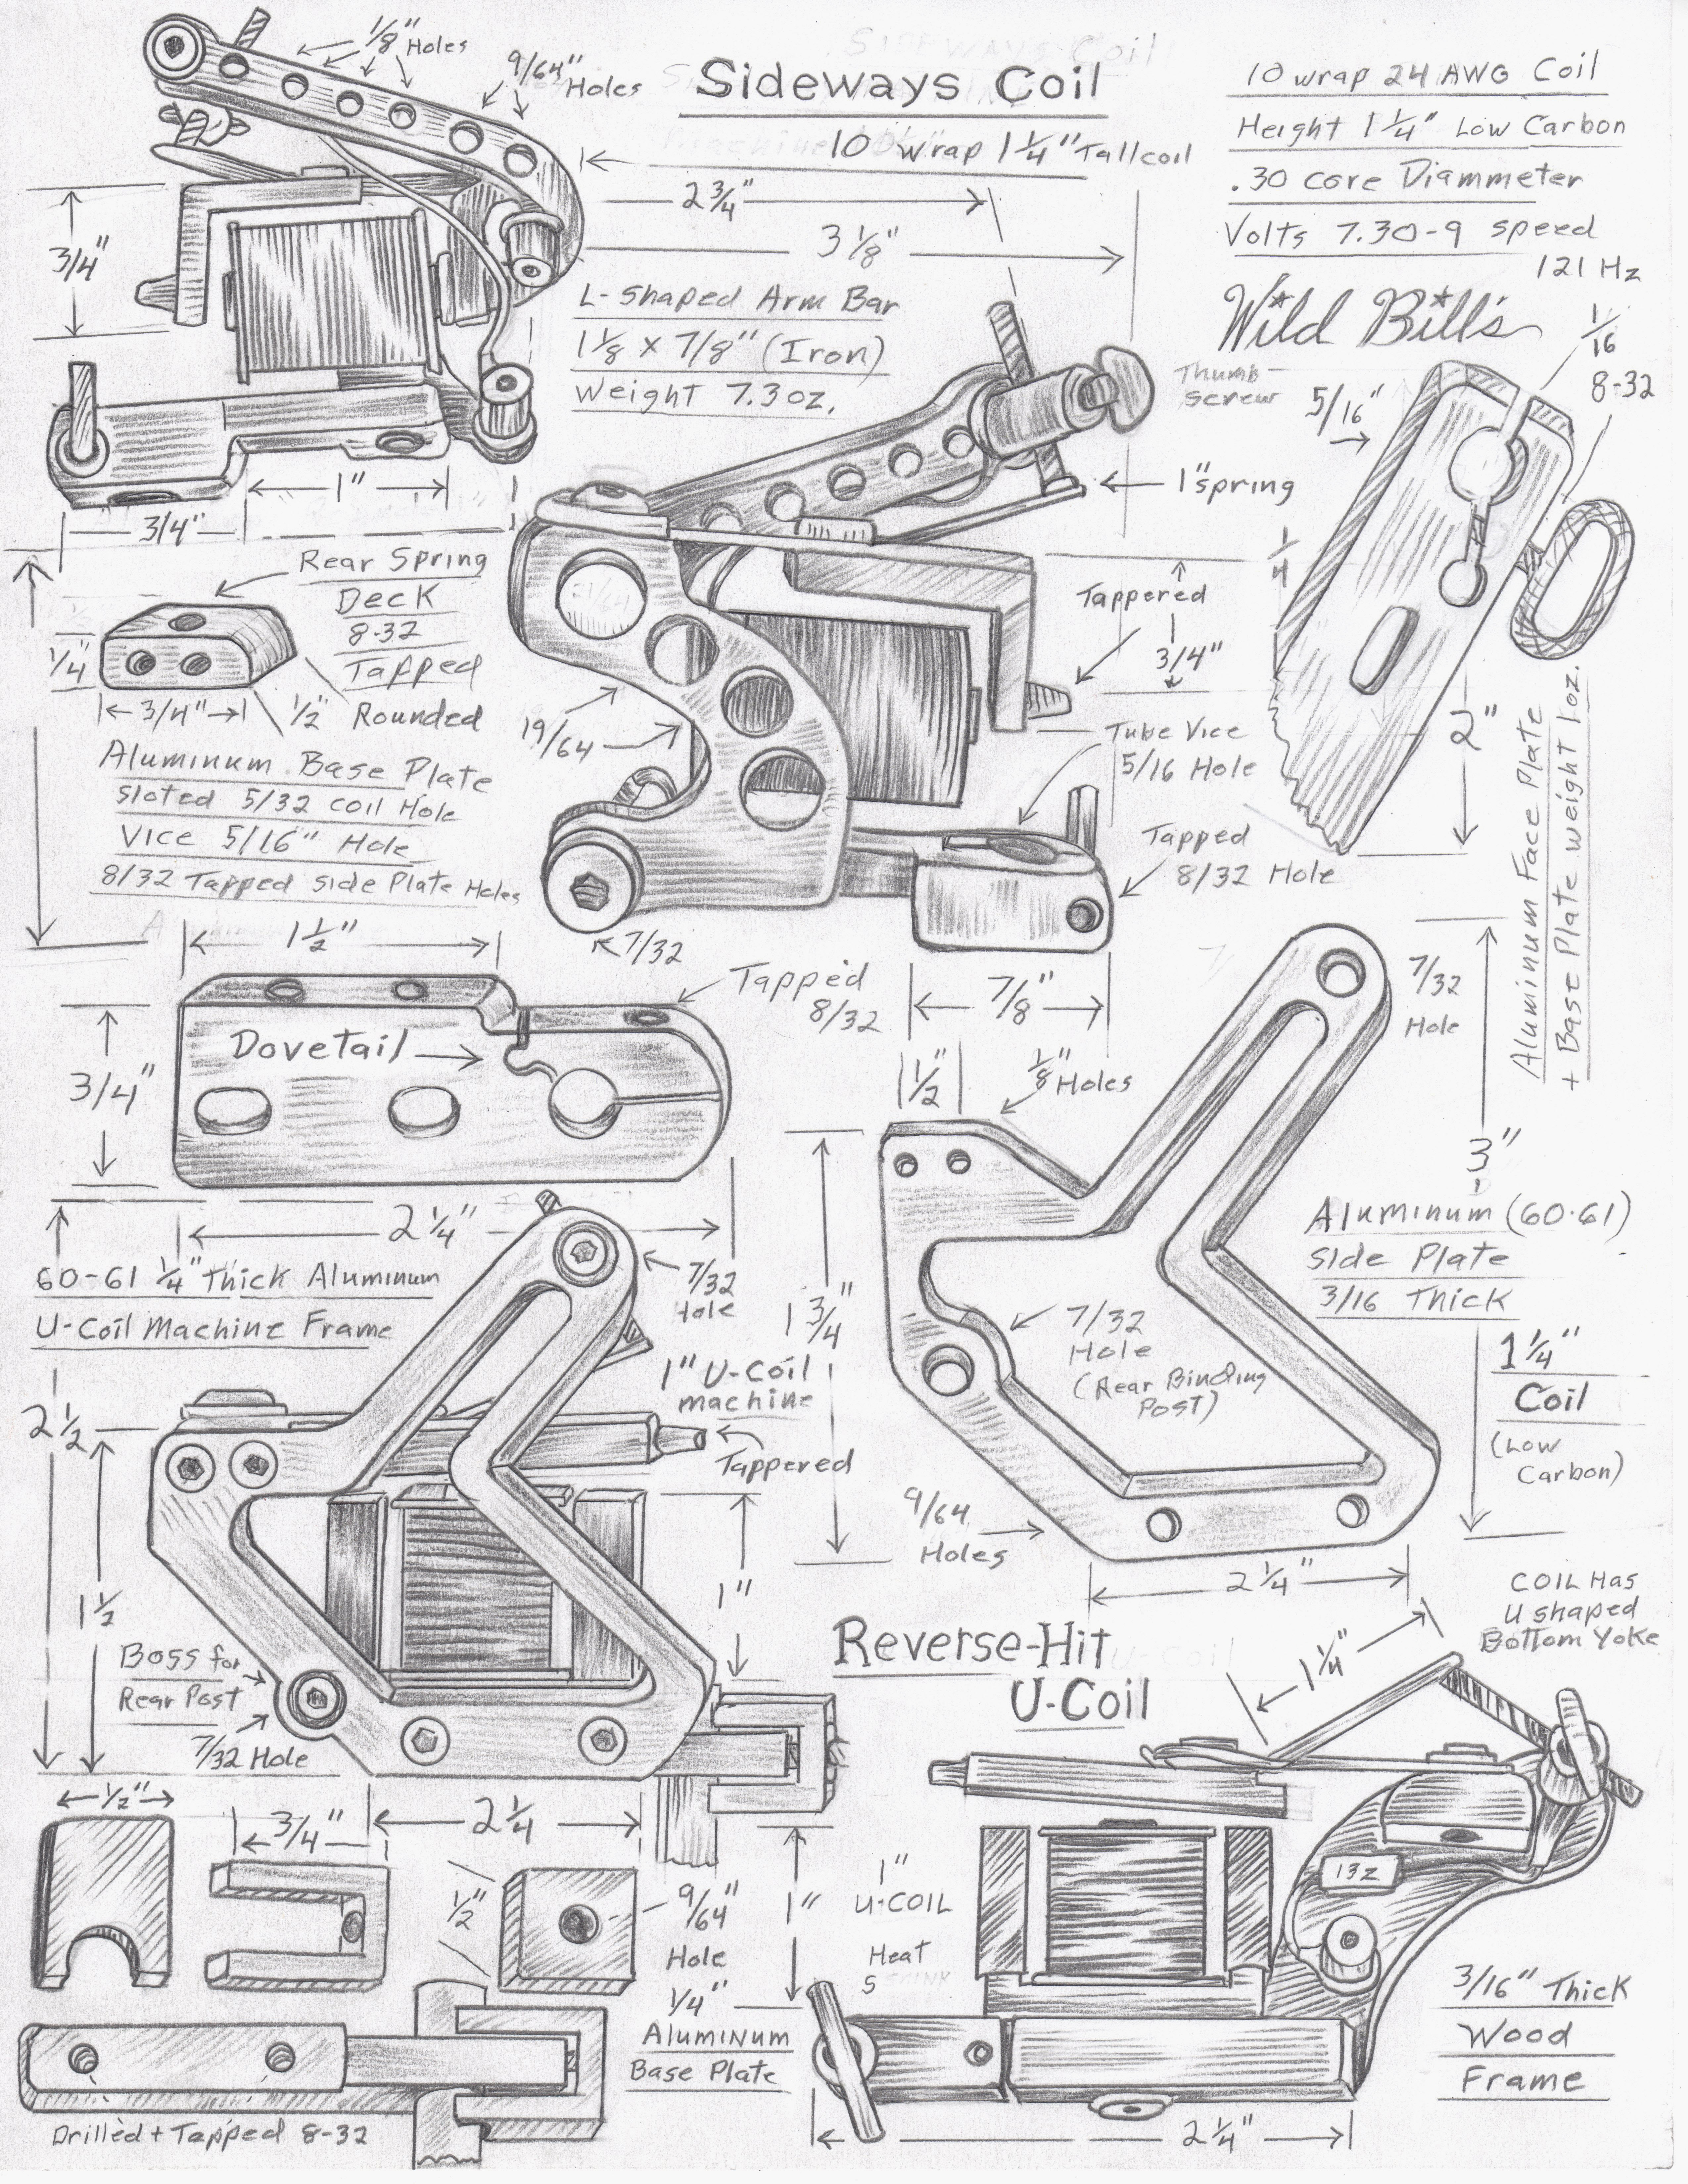 Tattoo machine frame blueprint frame design reviews home tattoo machine frame blueprint it took a lot of experimenting to find just the right size 22mf at 25v now malvernweather Choice Image